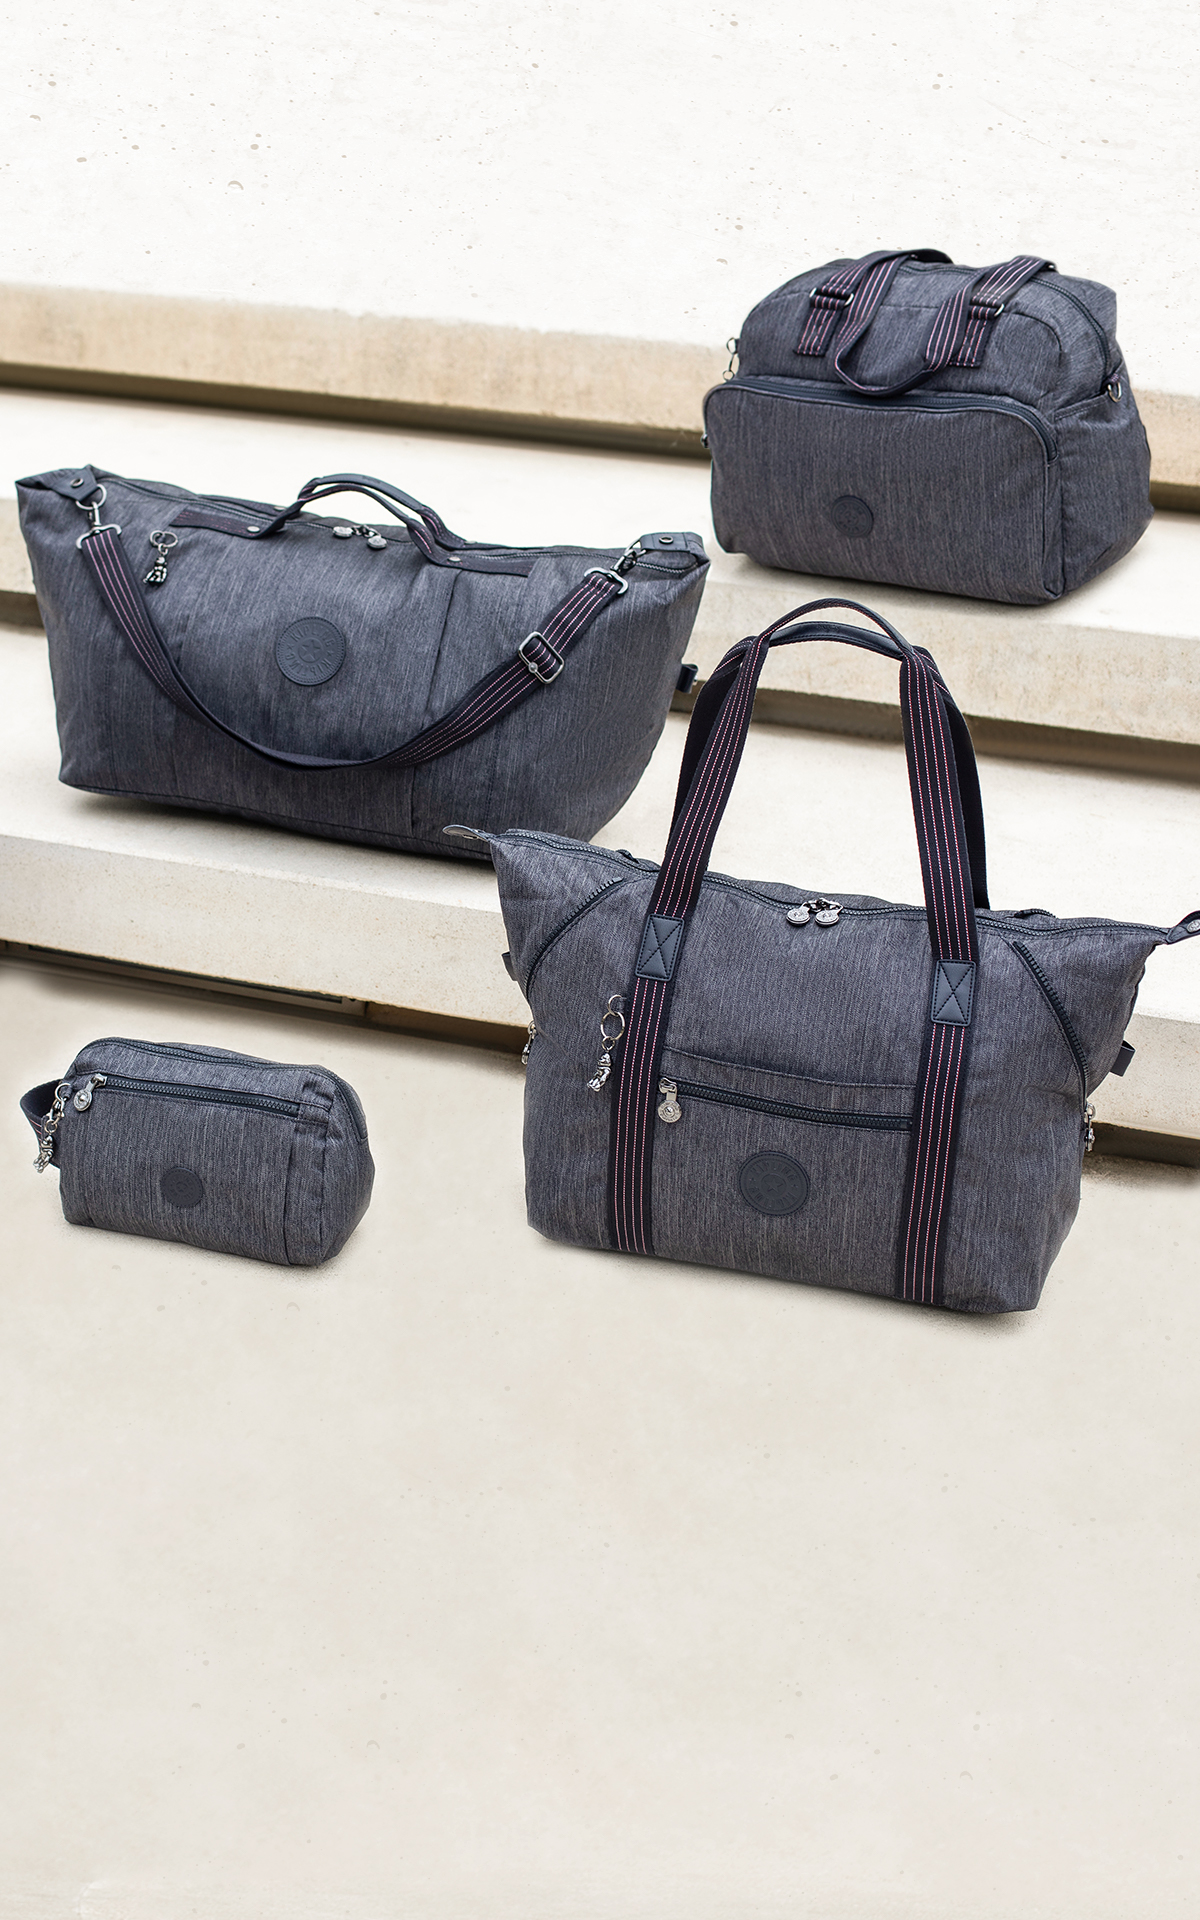 Different size grey bags Kipling